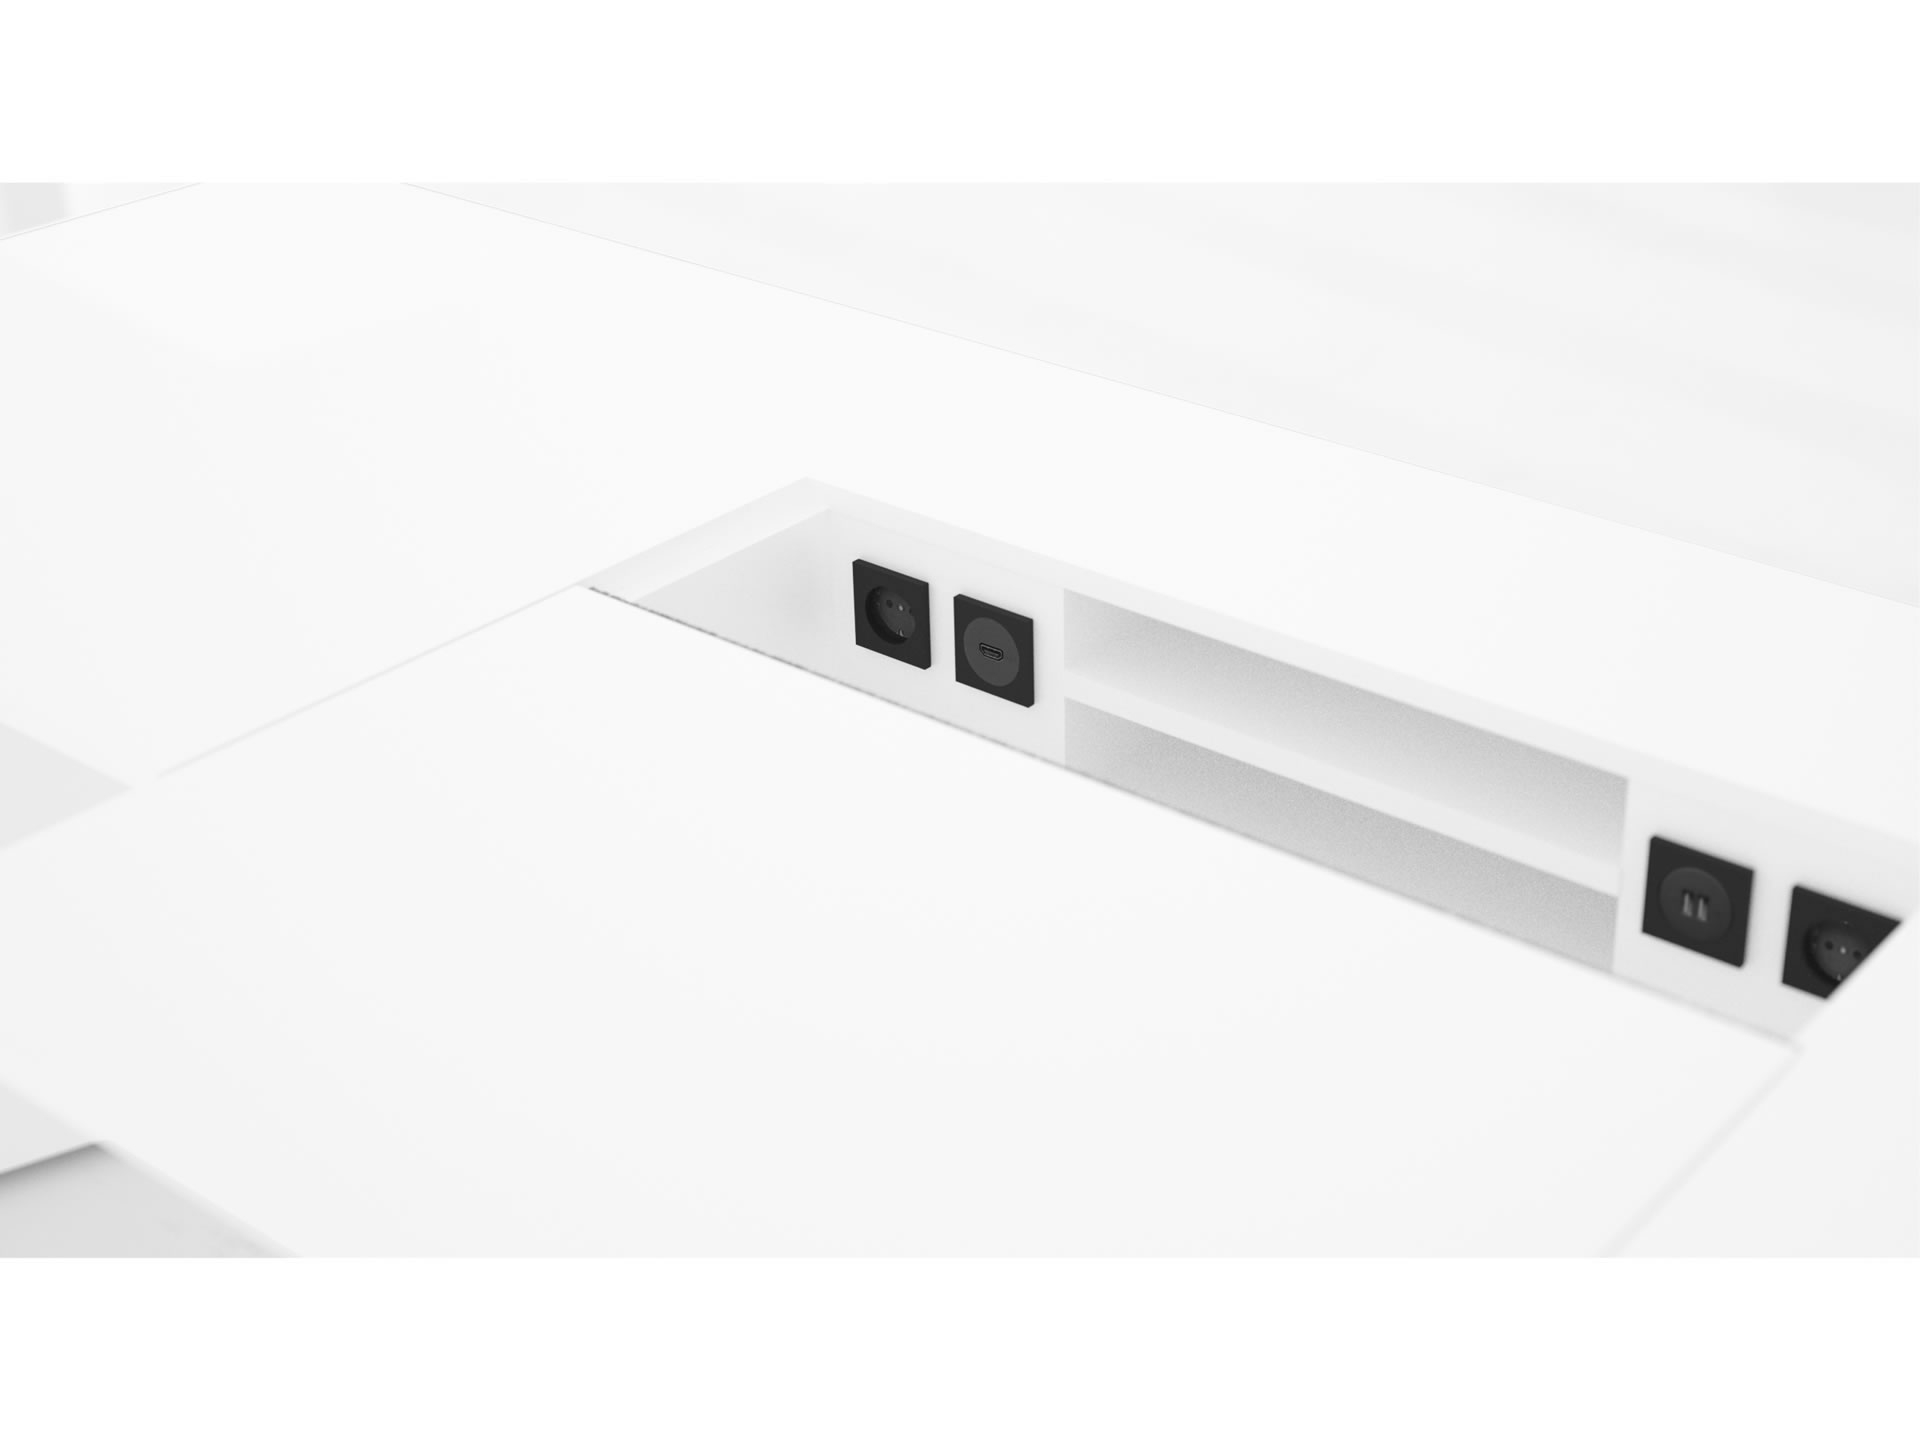 FELIX SCHWAKE DESK I Customize White Designer Desk with Extensible Desk Pad